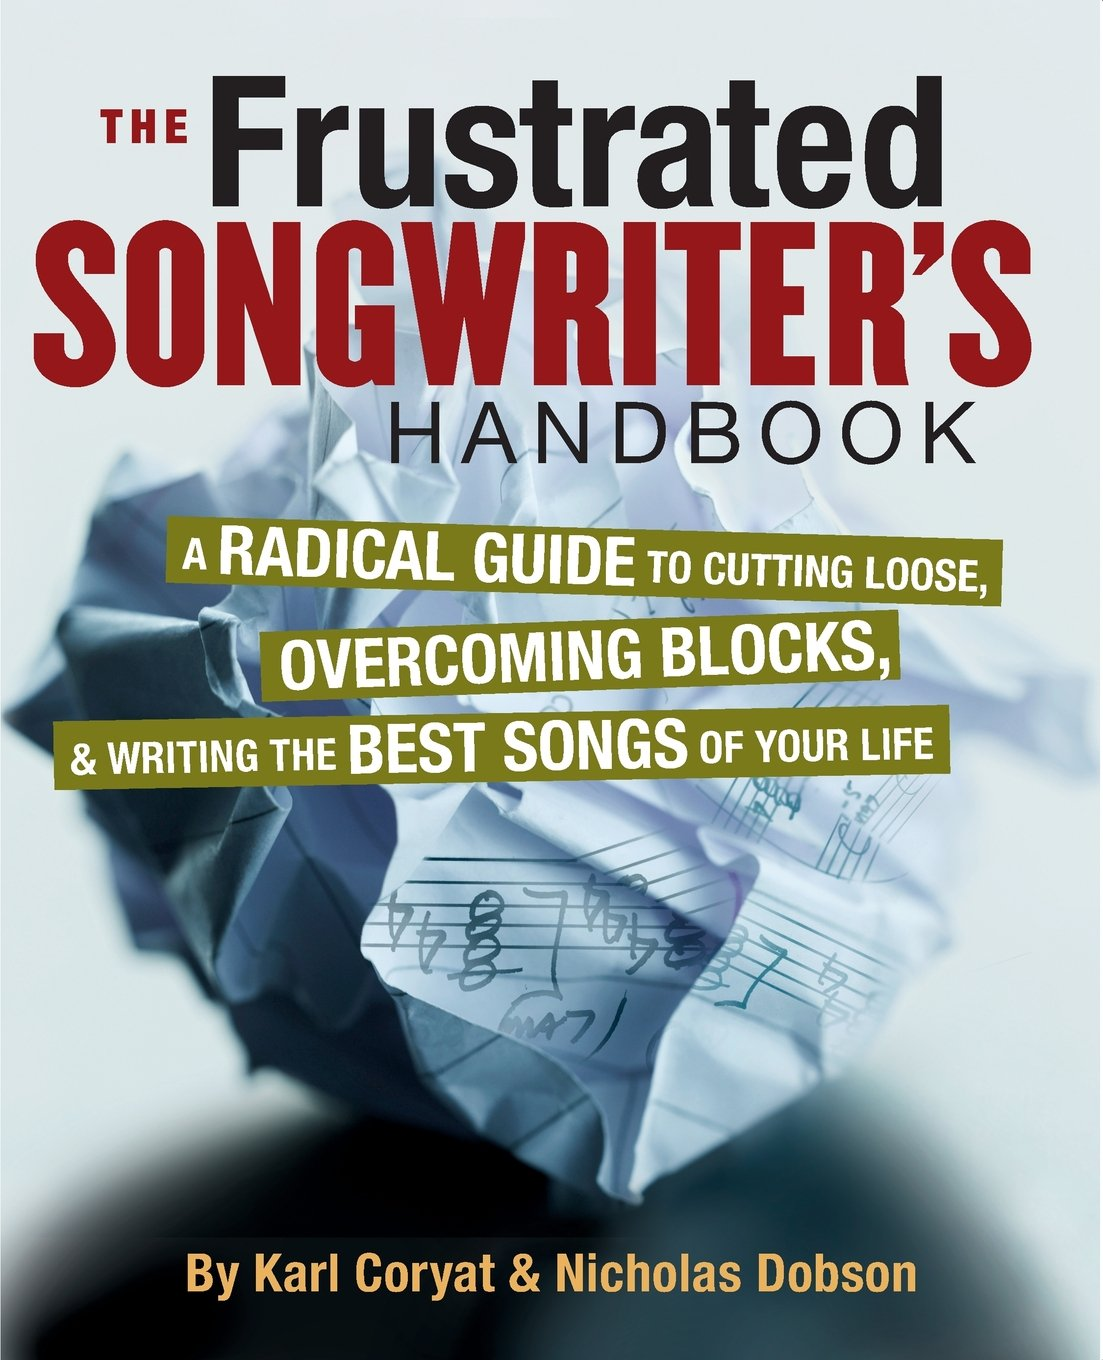 The Frustrated Songwriter's Handbook: A Radical Guide to Cutting Loose, Overcoming Blocks, Writing the Best Songs of Your Life